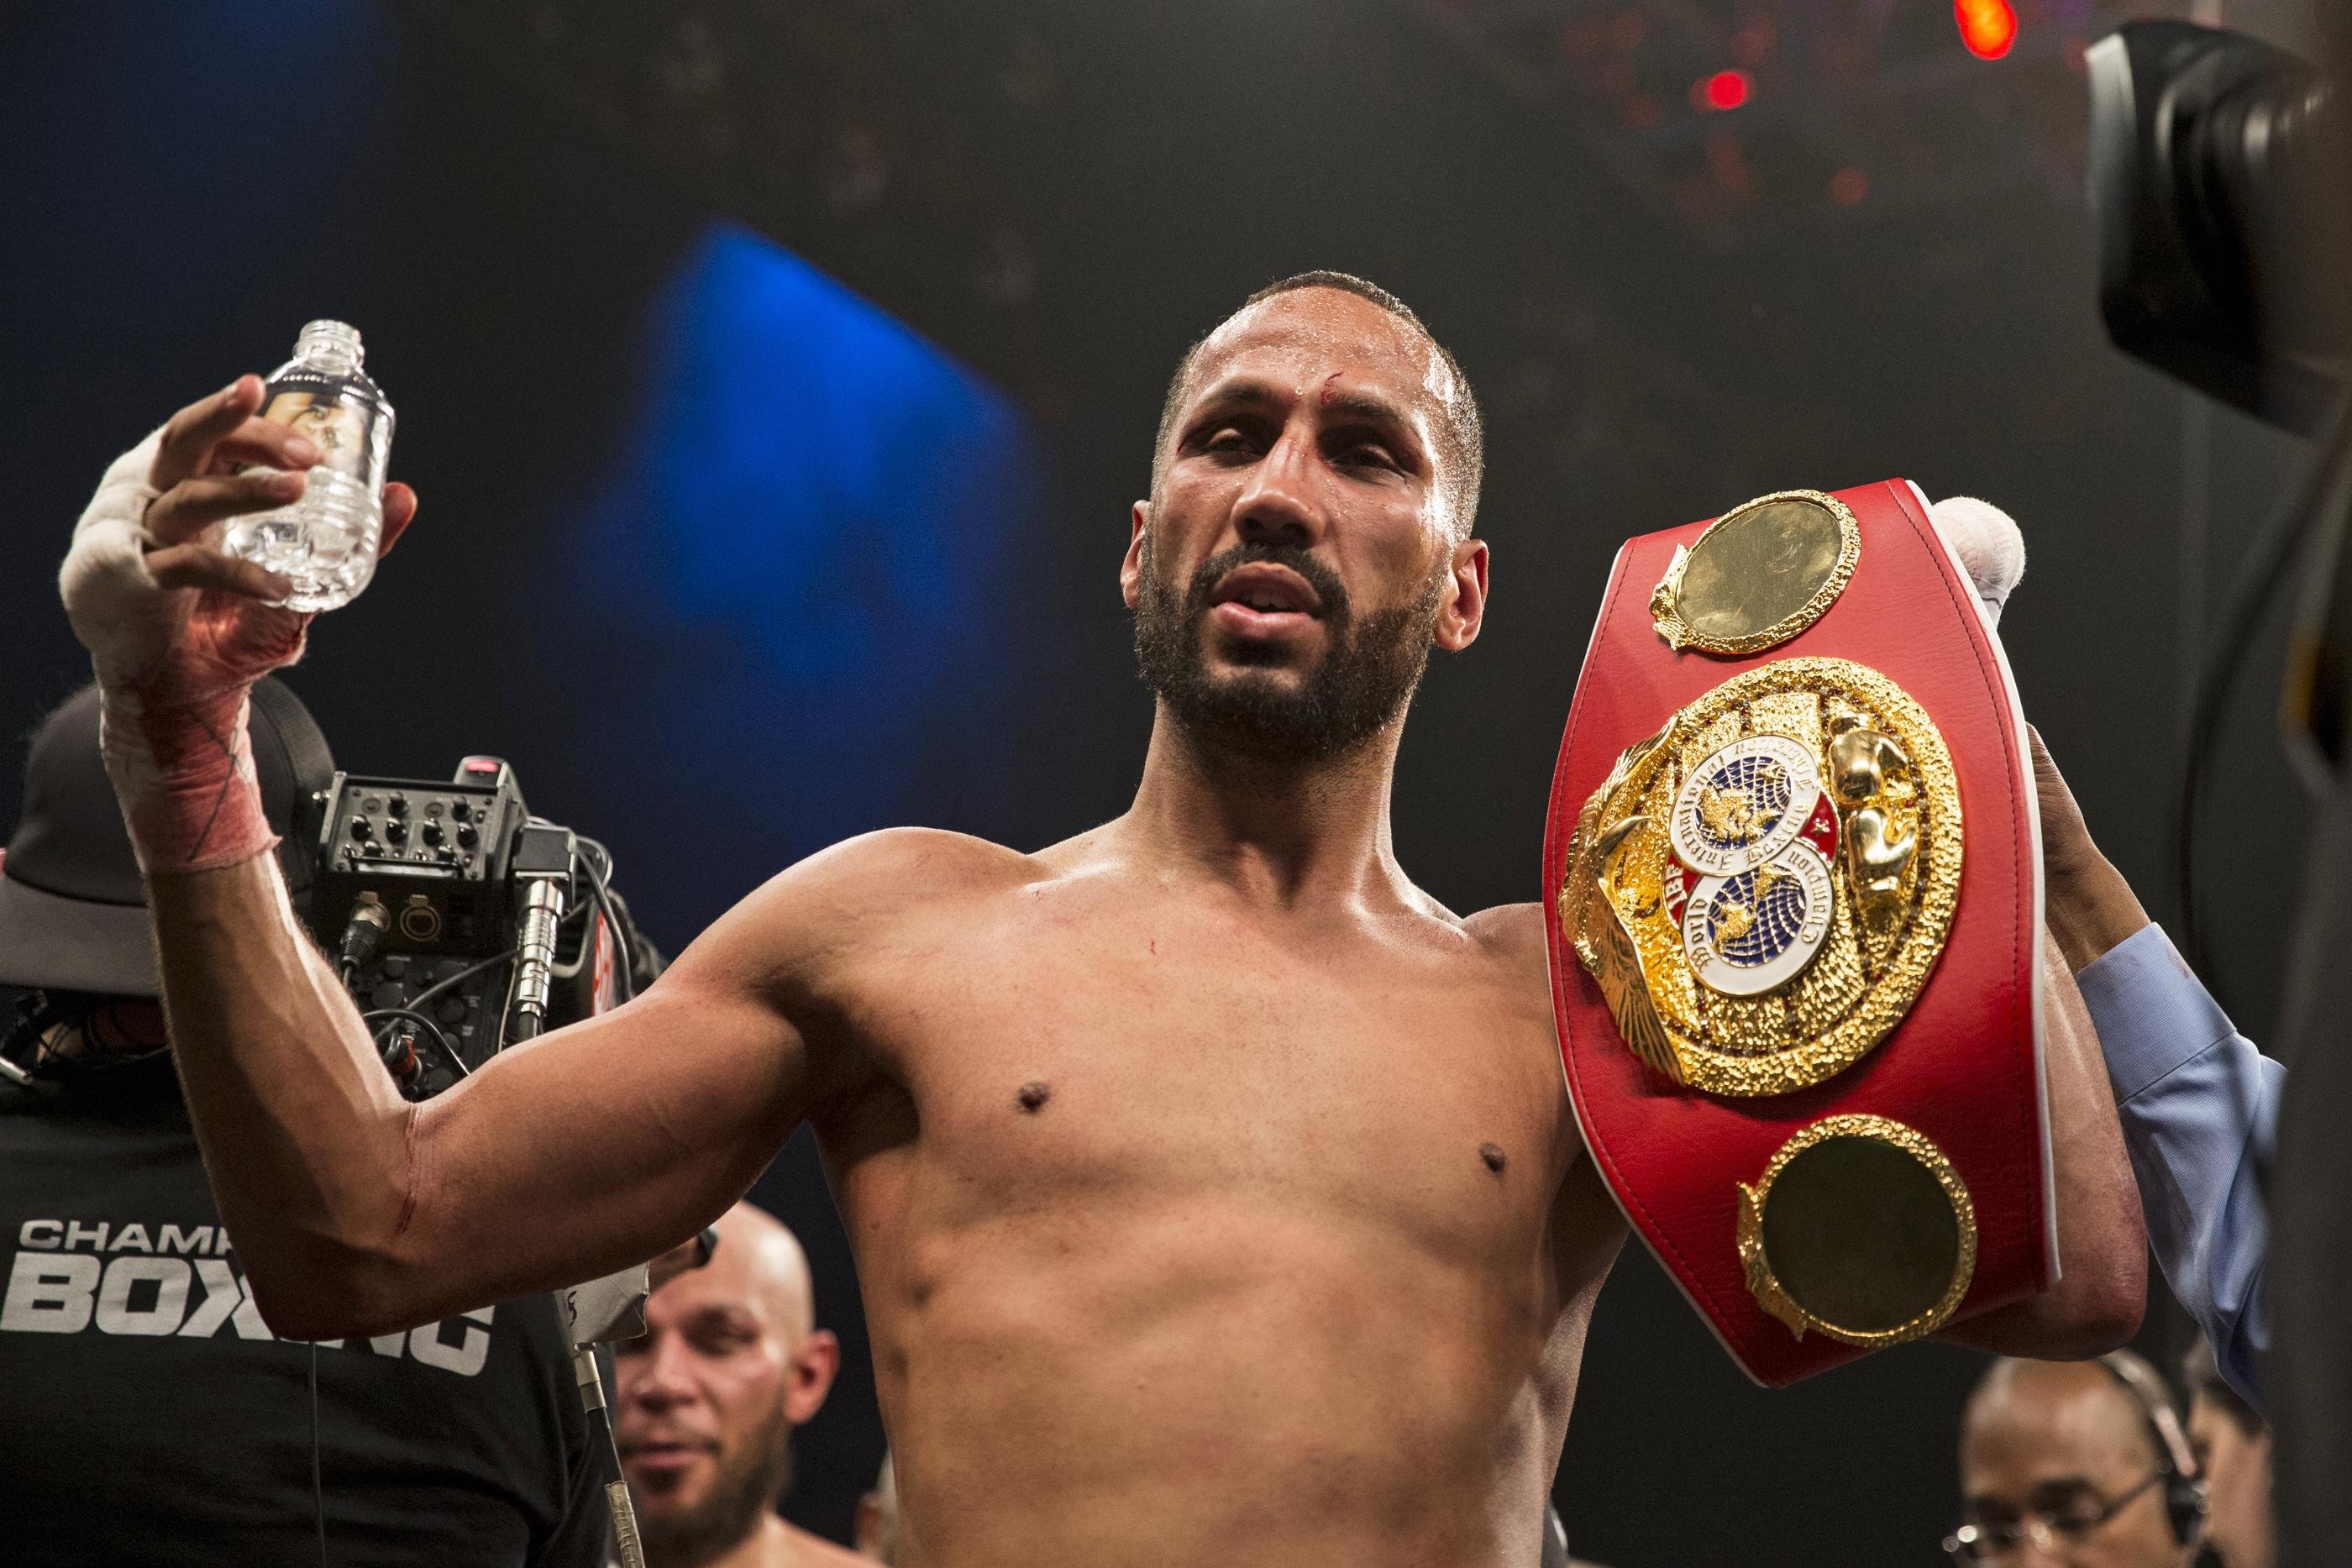 James DeGale won back the IBF title he lost in London last year